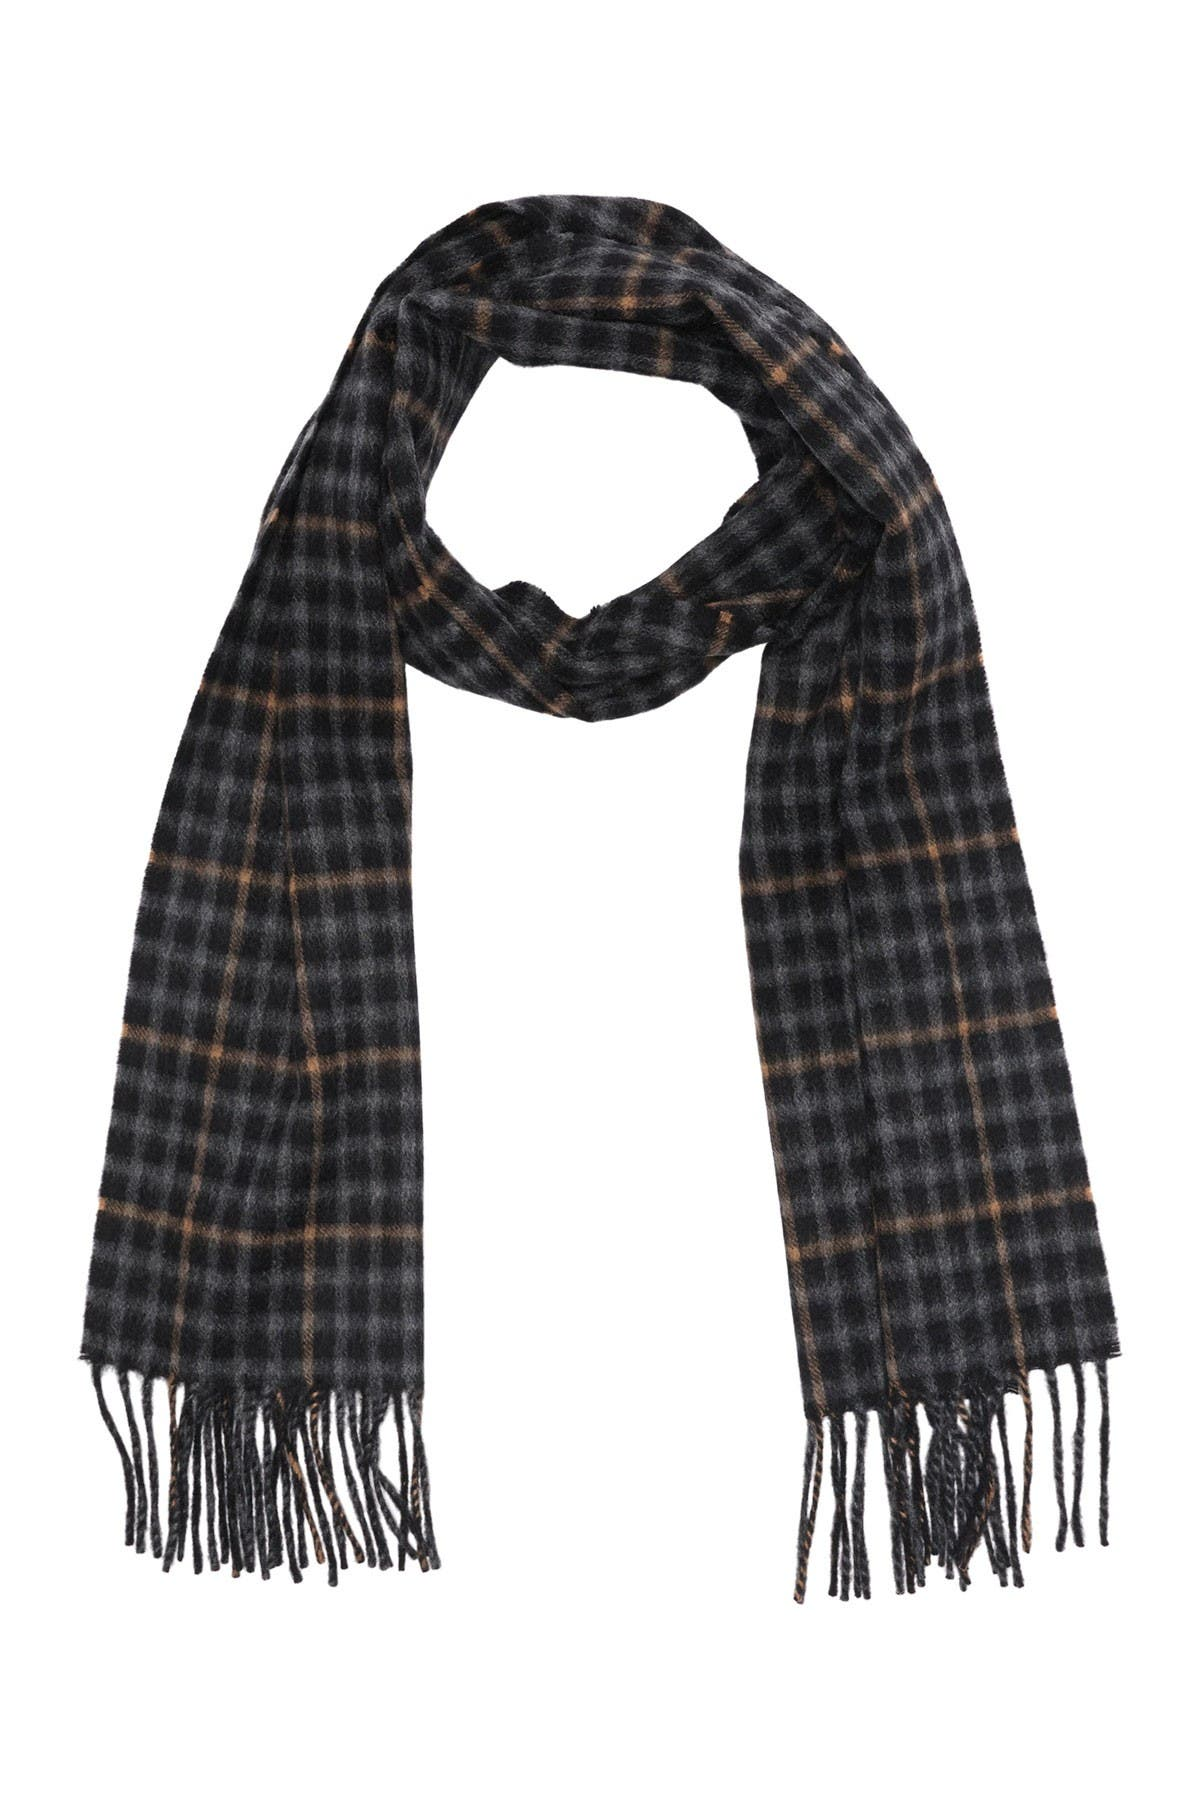 Image of Hickey Freeman Cashmere Gingham Windowpane Scarf